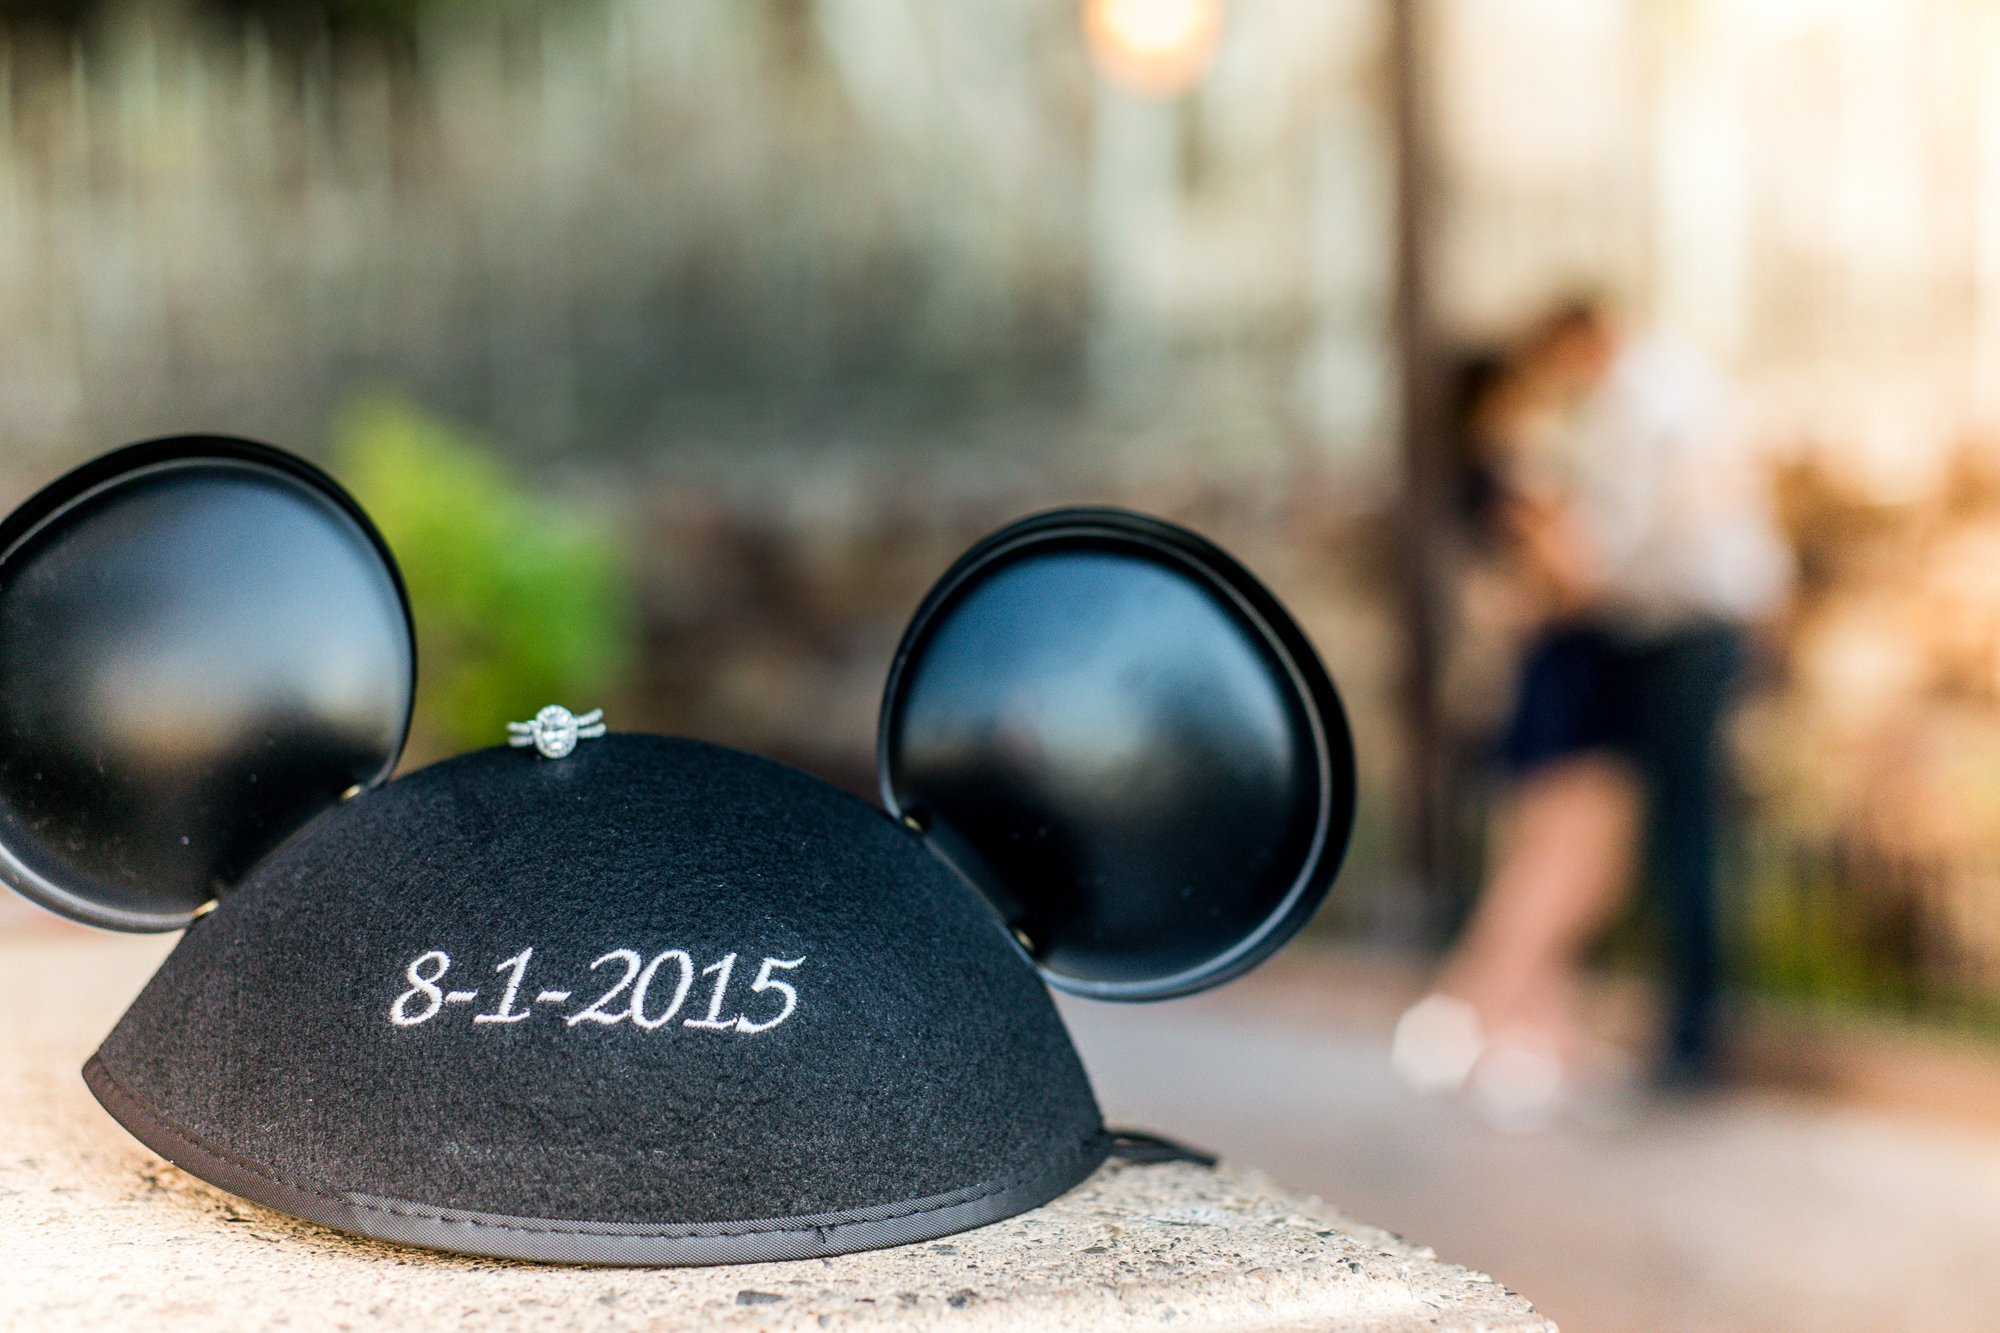 Mehlberg engagement ring with Mickey Ears